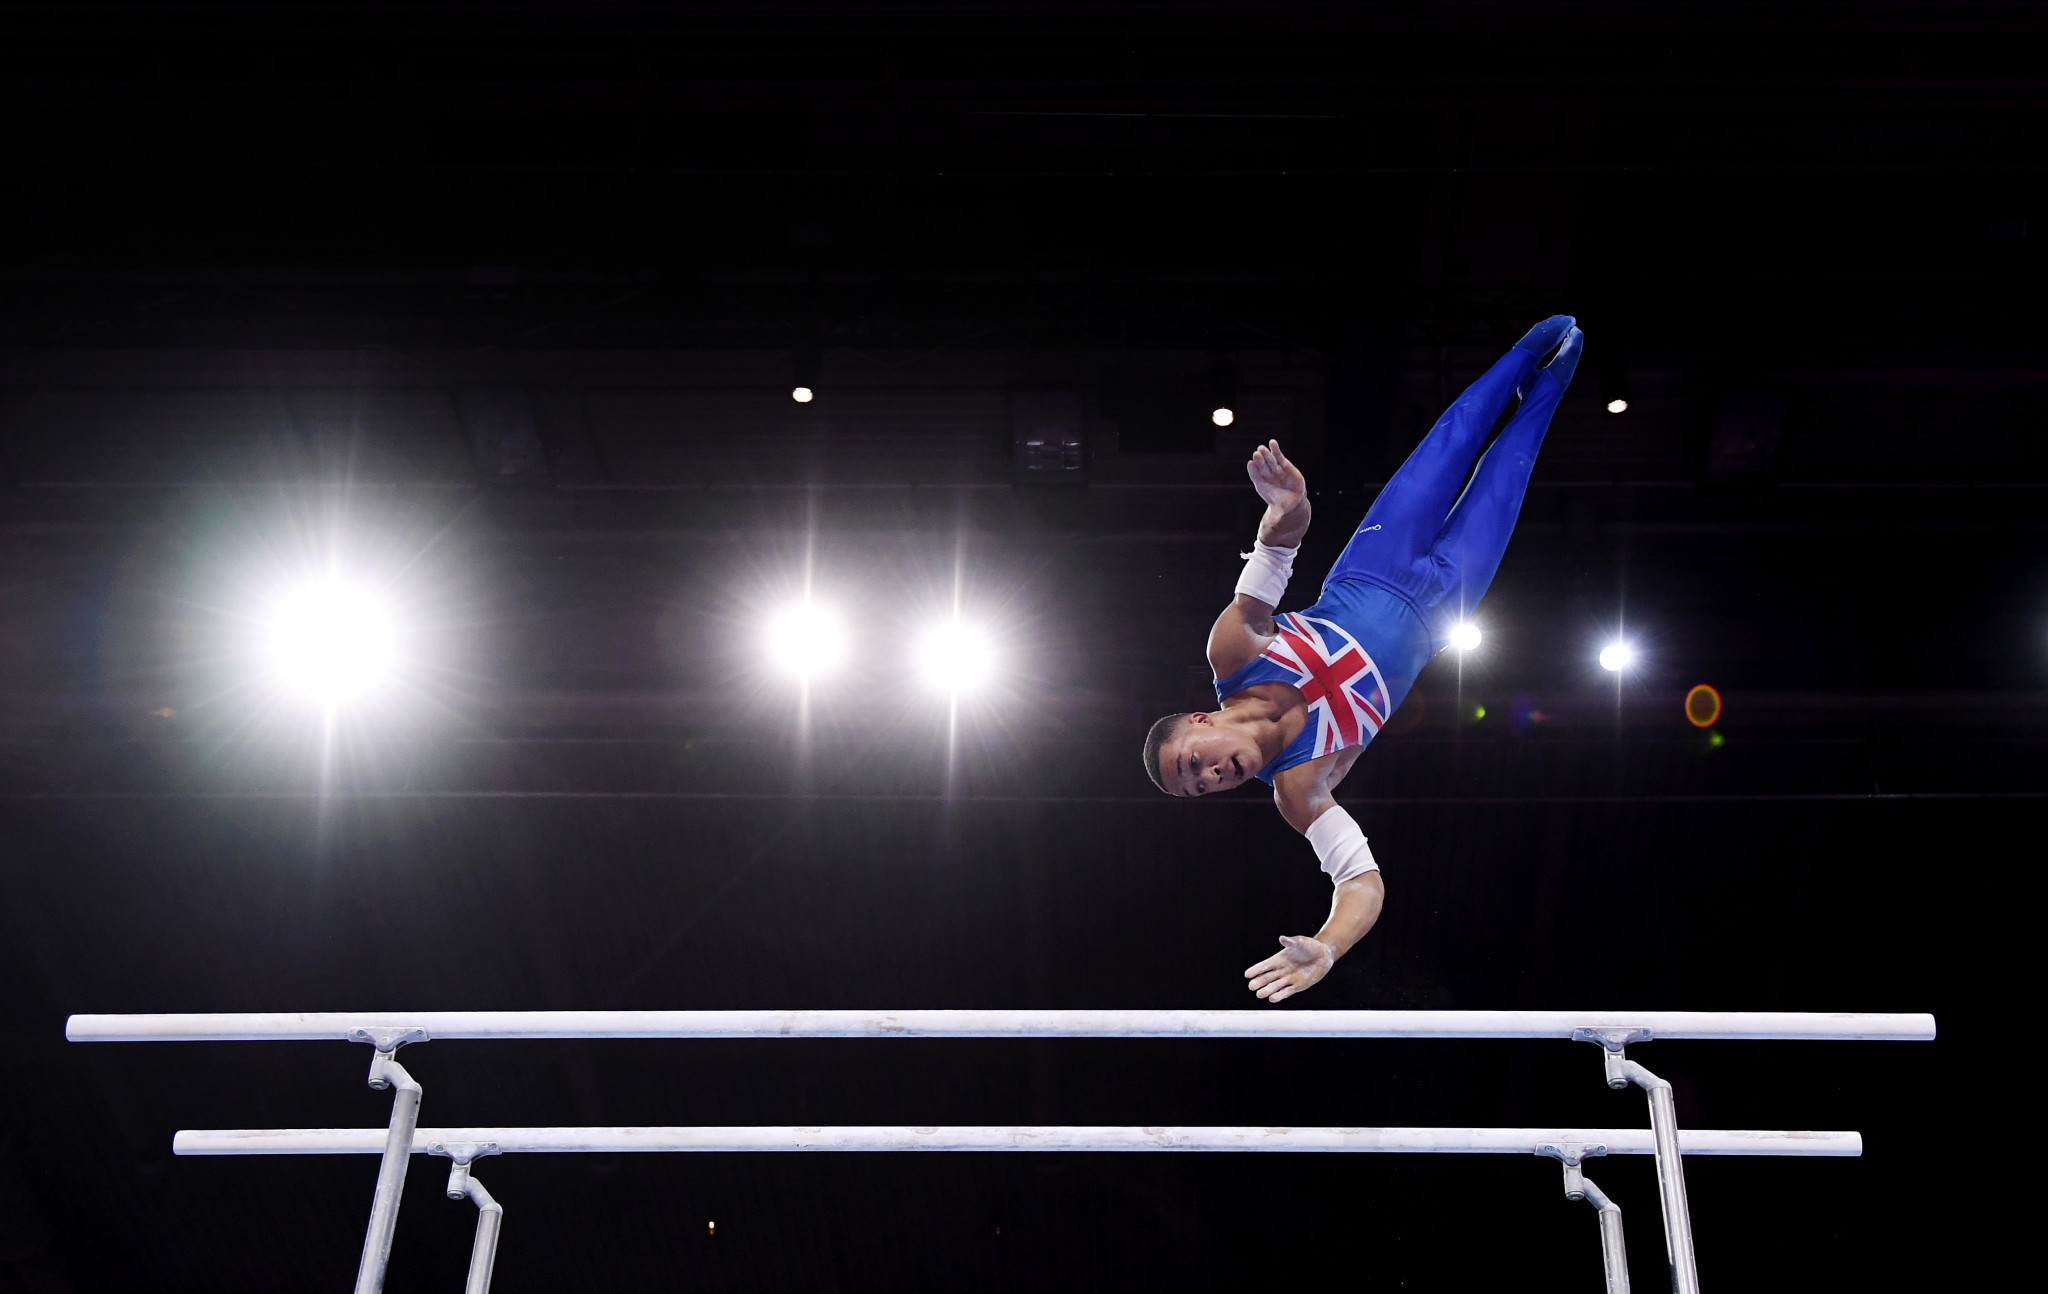 This year's European Gymnastics Championships will not offer athletes the chance to qualify for the Olympics ©Getty Images